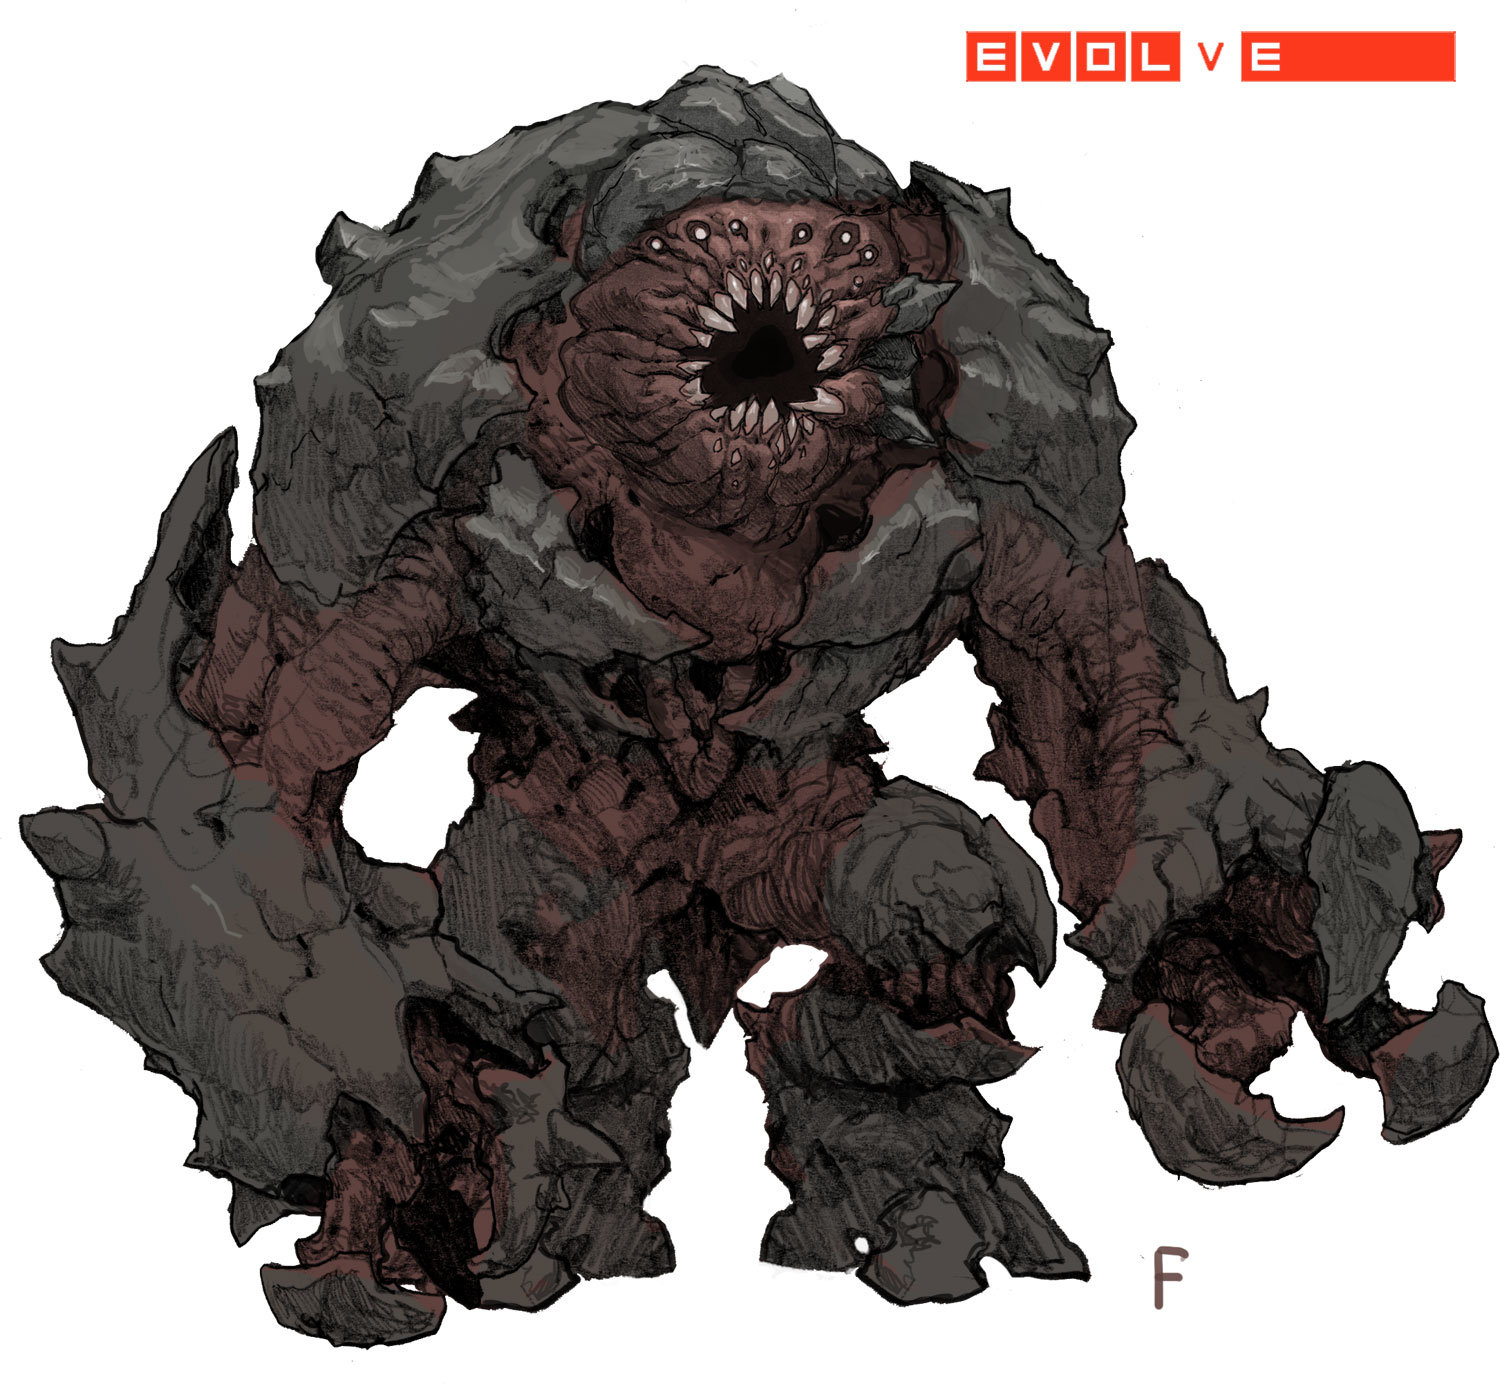 Evolve concept art picture behemoth одна из версий